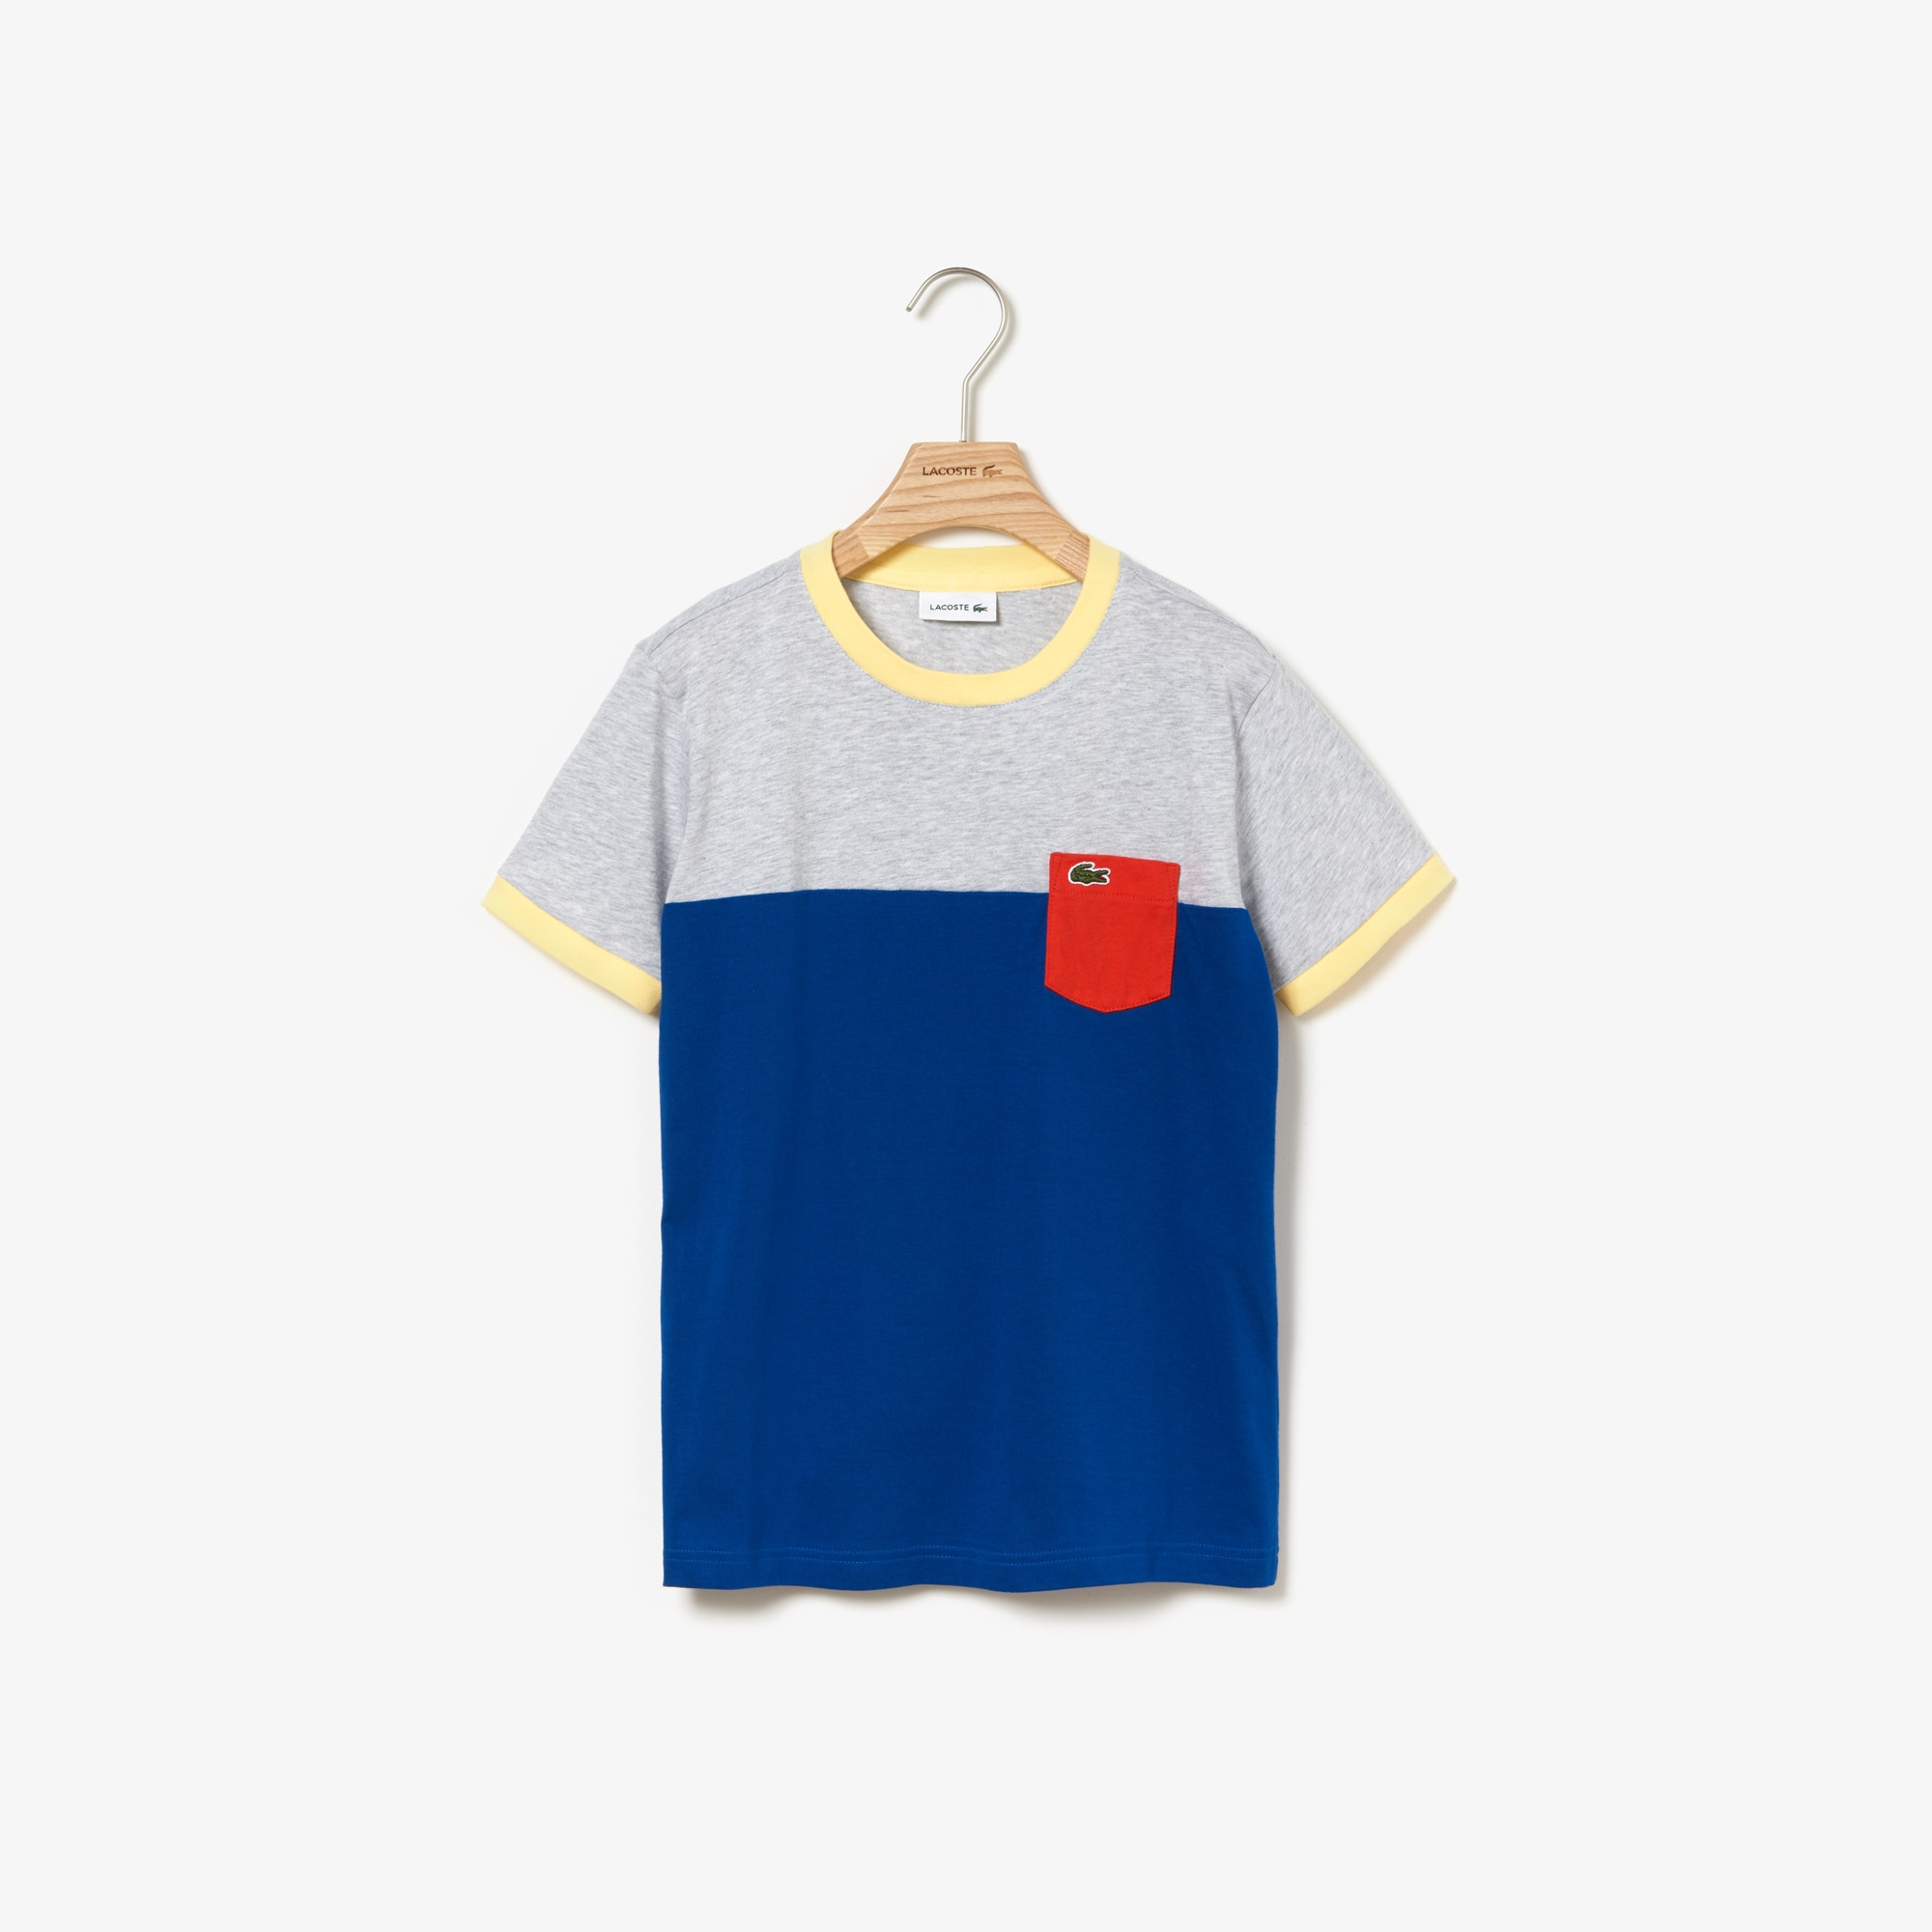 Boys' Crew Neck Cotton T-shirt